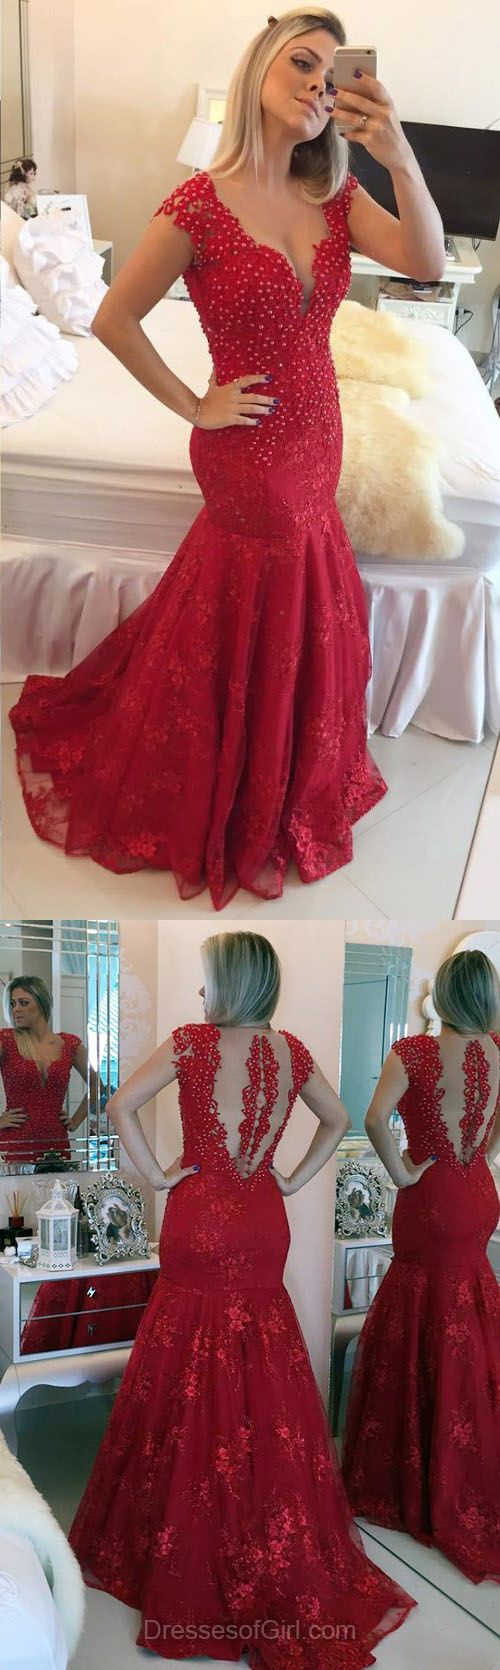 Long Prom Dresses, Lace Prom Dress, Mermaid Evening Gowns, V Neck Party Dresses, Red Formal Dresses